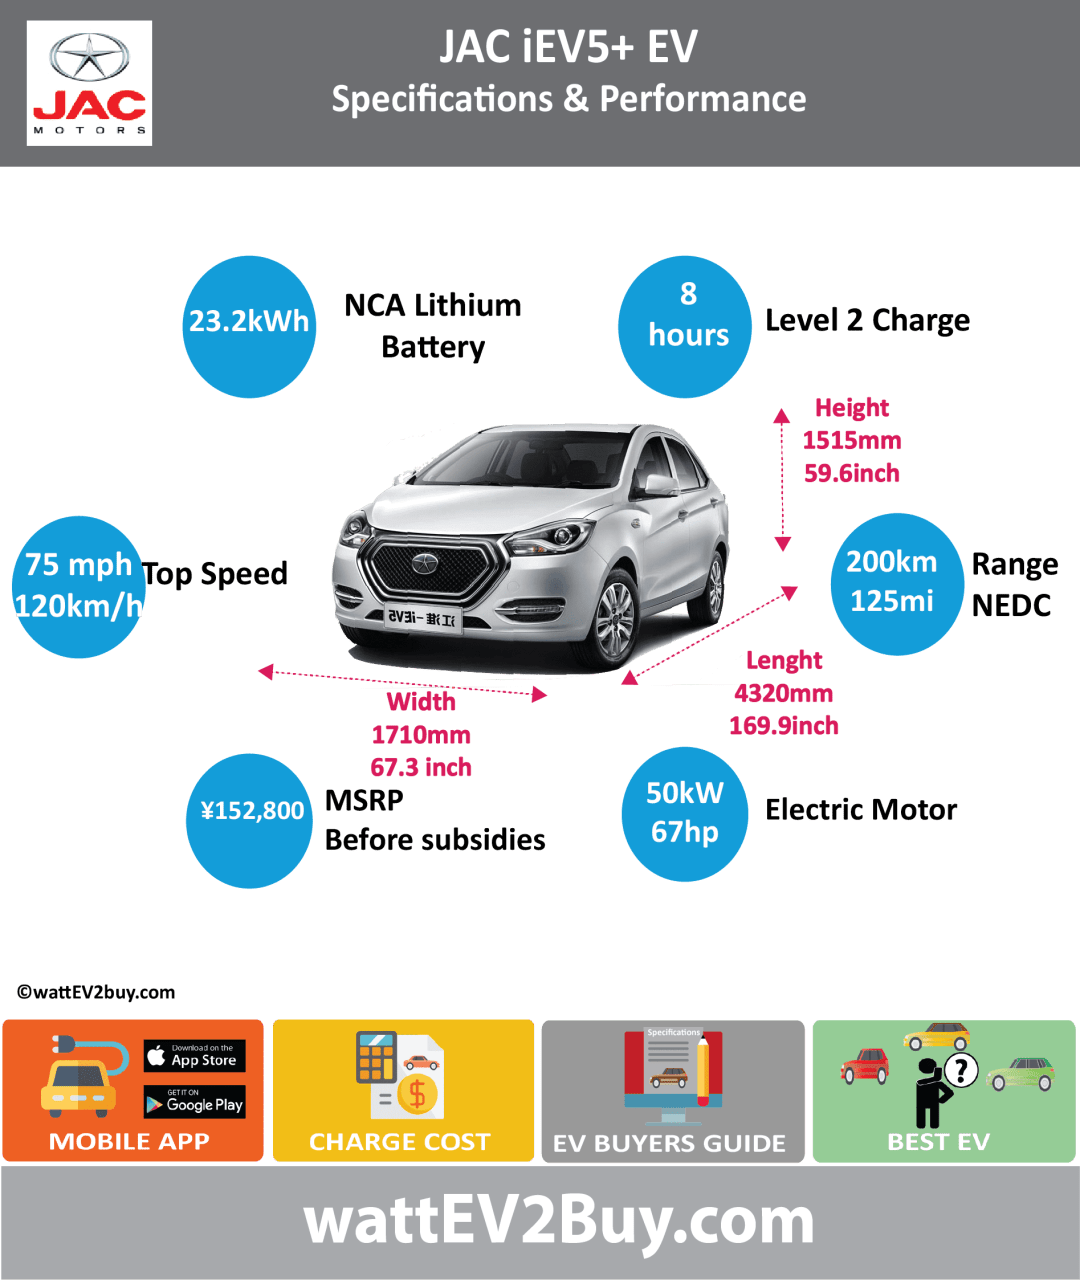 JAC iEV5+ EV (2014 - 2016) 2014 2015 2016 Battery Chemistry Terpolymer Li-Ion (NCA) Battery Capacity kWh 23.2 Battery Nominal rating kWh Voltage V Amps Ah 70 Cells Modules Weight (kg) Cell Type Cooling Liquid Type Perm Mag Syncro Cycles Depth of Discharge (DOD) Energy Density Wh/kg Battery Manufacturer Battery Warranty - years Battery Warranty - km Battery Electric Range - at constant 38mph 150 Battery Electric Range - at constant 60km/h 240 Battery Electric Range - NEDC Mi 125 Battery Electric Range - NEDC km 200 Electric Top Speed - mph 75 Electric Top Speed - km/h 120 Acceleration 0 - 100km/h sec Acceleration 0 - 50km/h sec 6 Onboard Charger LV 1 Charge kW LV 1 Charge Time (Hours) 8 LV 2 Charge kW LV 2 Charge Time (Hours) LV 3 CCS/Combo kW LV 3 Charge Time (min to 80%) 90 Charge Connector MPGe Combined - miles MPGe Combined - km MPGe City - miles MPGe City - km MPGe Highway - miles MPGe Highway - km Max Power - hp 67 Max Power - kW 50 Max Torque - lb.ft Max Torque - N.m 215 Drivetrain Electric Motor Rear Electric Motor Front Motor Type Electric Motor Output kW Transmission Energy Consumption kWh/100km MSRP before incentives ¥152,000.00 MSRP after incentives ¥63,000.00 Vehicle Doors Seating 5 Dimensions GVWR (kg) 1635 Curb Weight (kg) 1260 Payload Capacity (lbs) Towing Capacity (lbs) Wheelbase (mm) 2490 Ground Clearance (mm) Lenght (mm) 4320 Width (mm) 1710 Height (mm) 1515 Other Market Class Incentives Safety Level